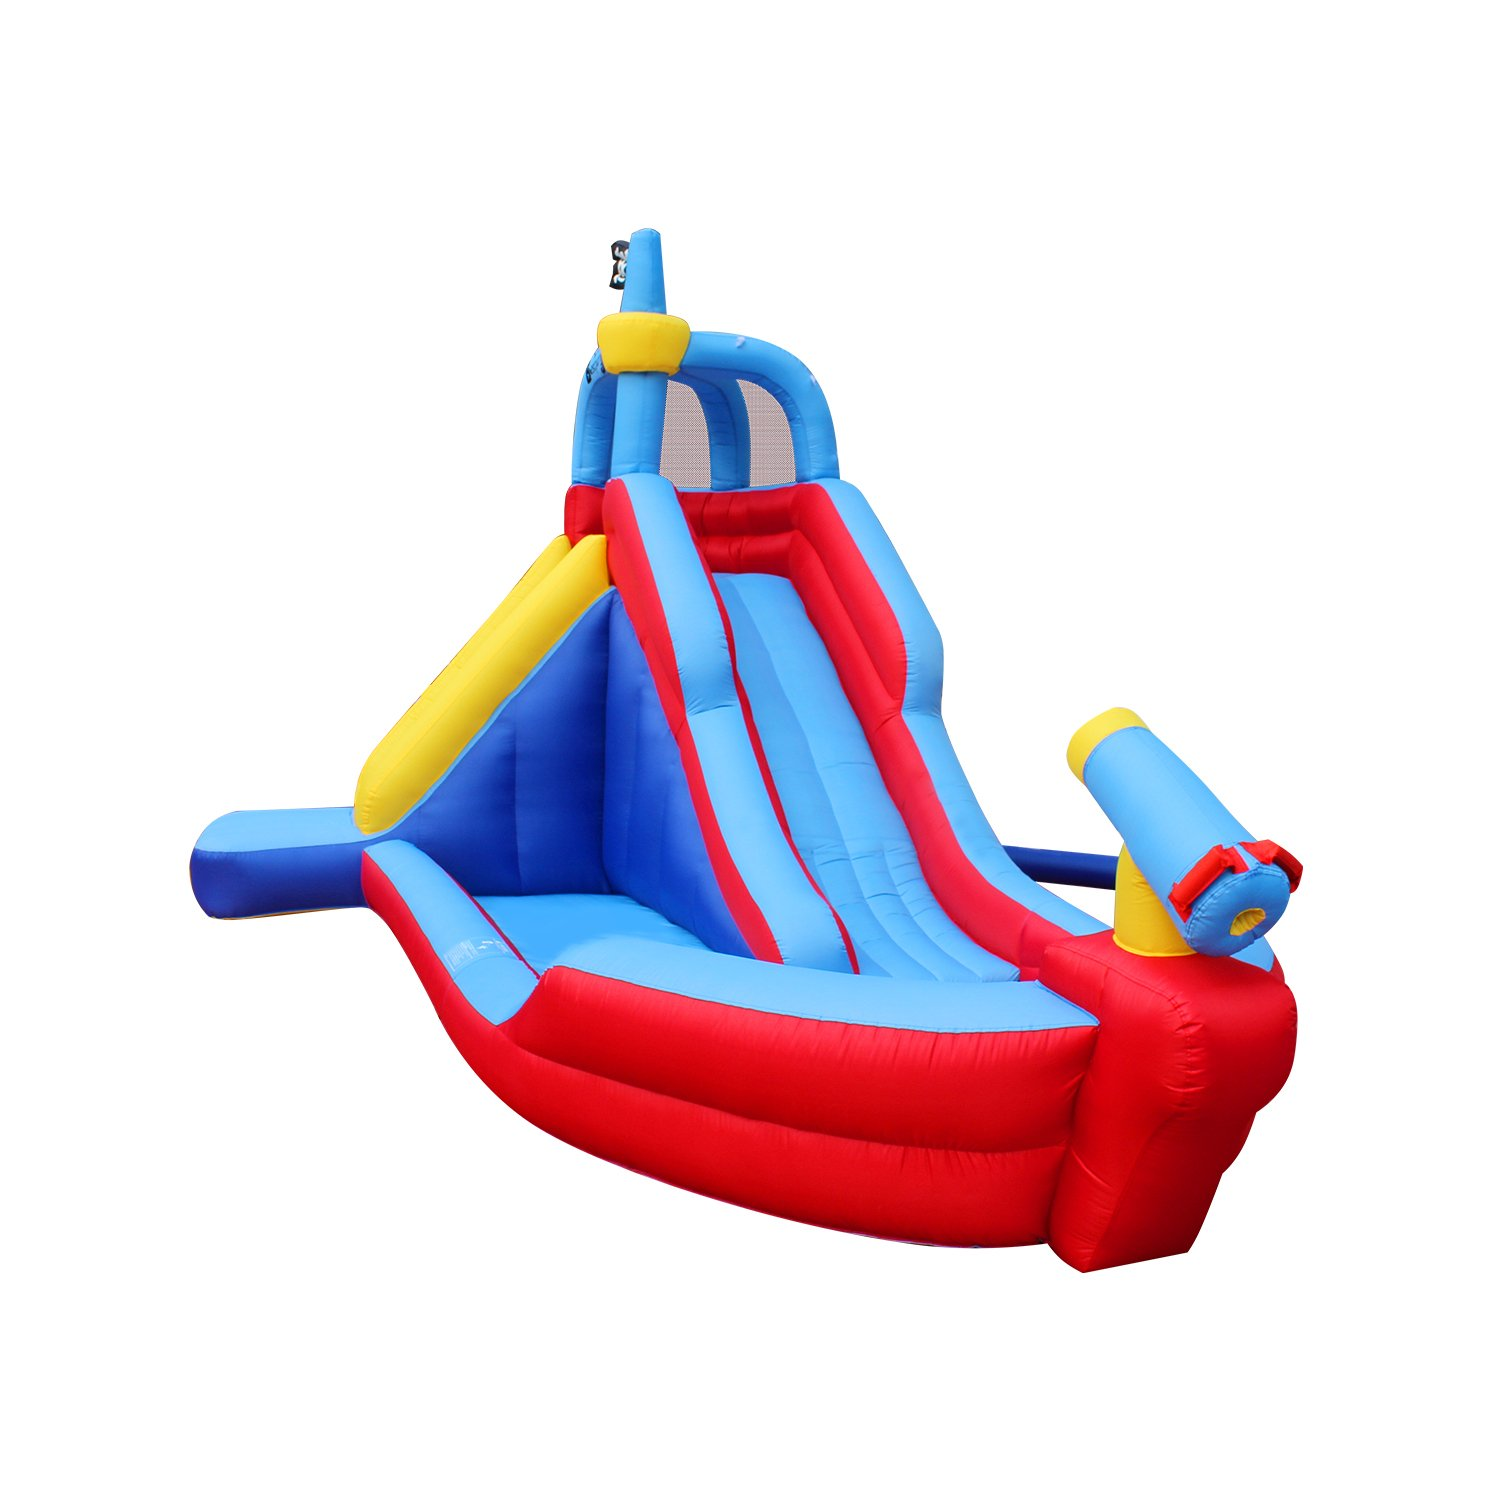 RETRO JUMP Inflatable Pirate Boat Bouncy Water Slide with Blower Climbing Wall Water Park for Kids by RETRO JUMP (Image #2)